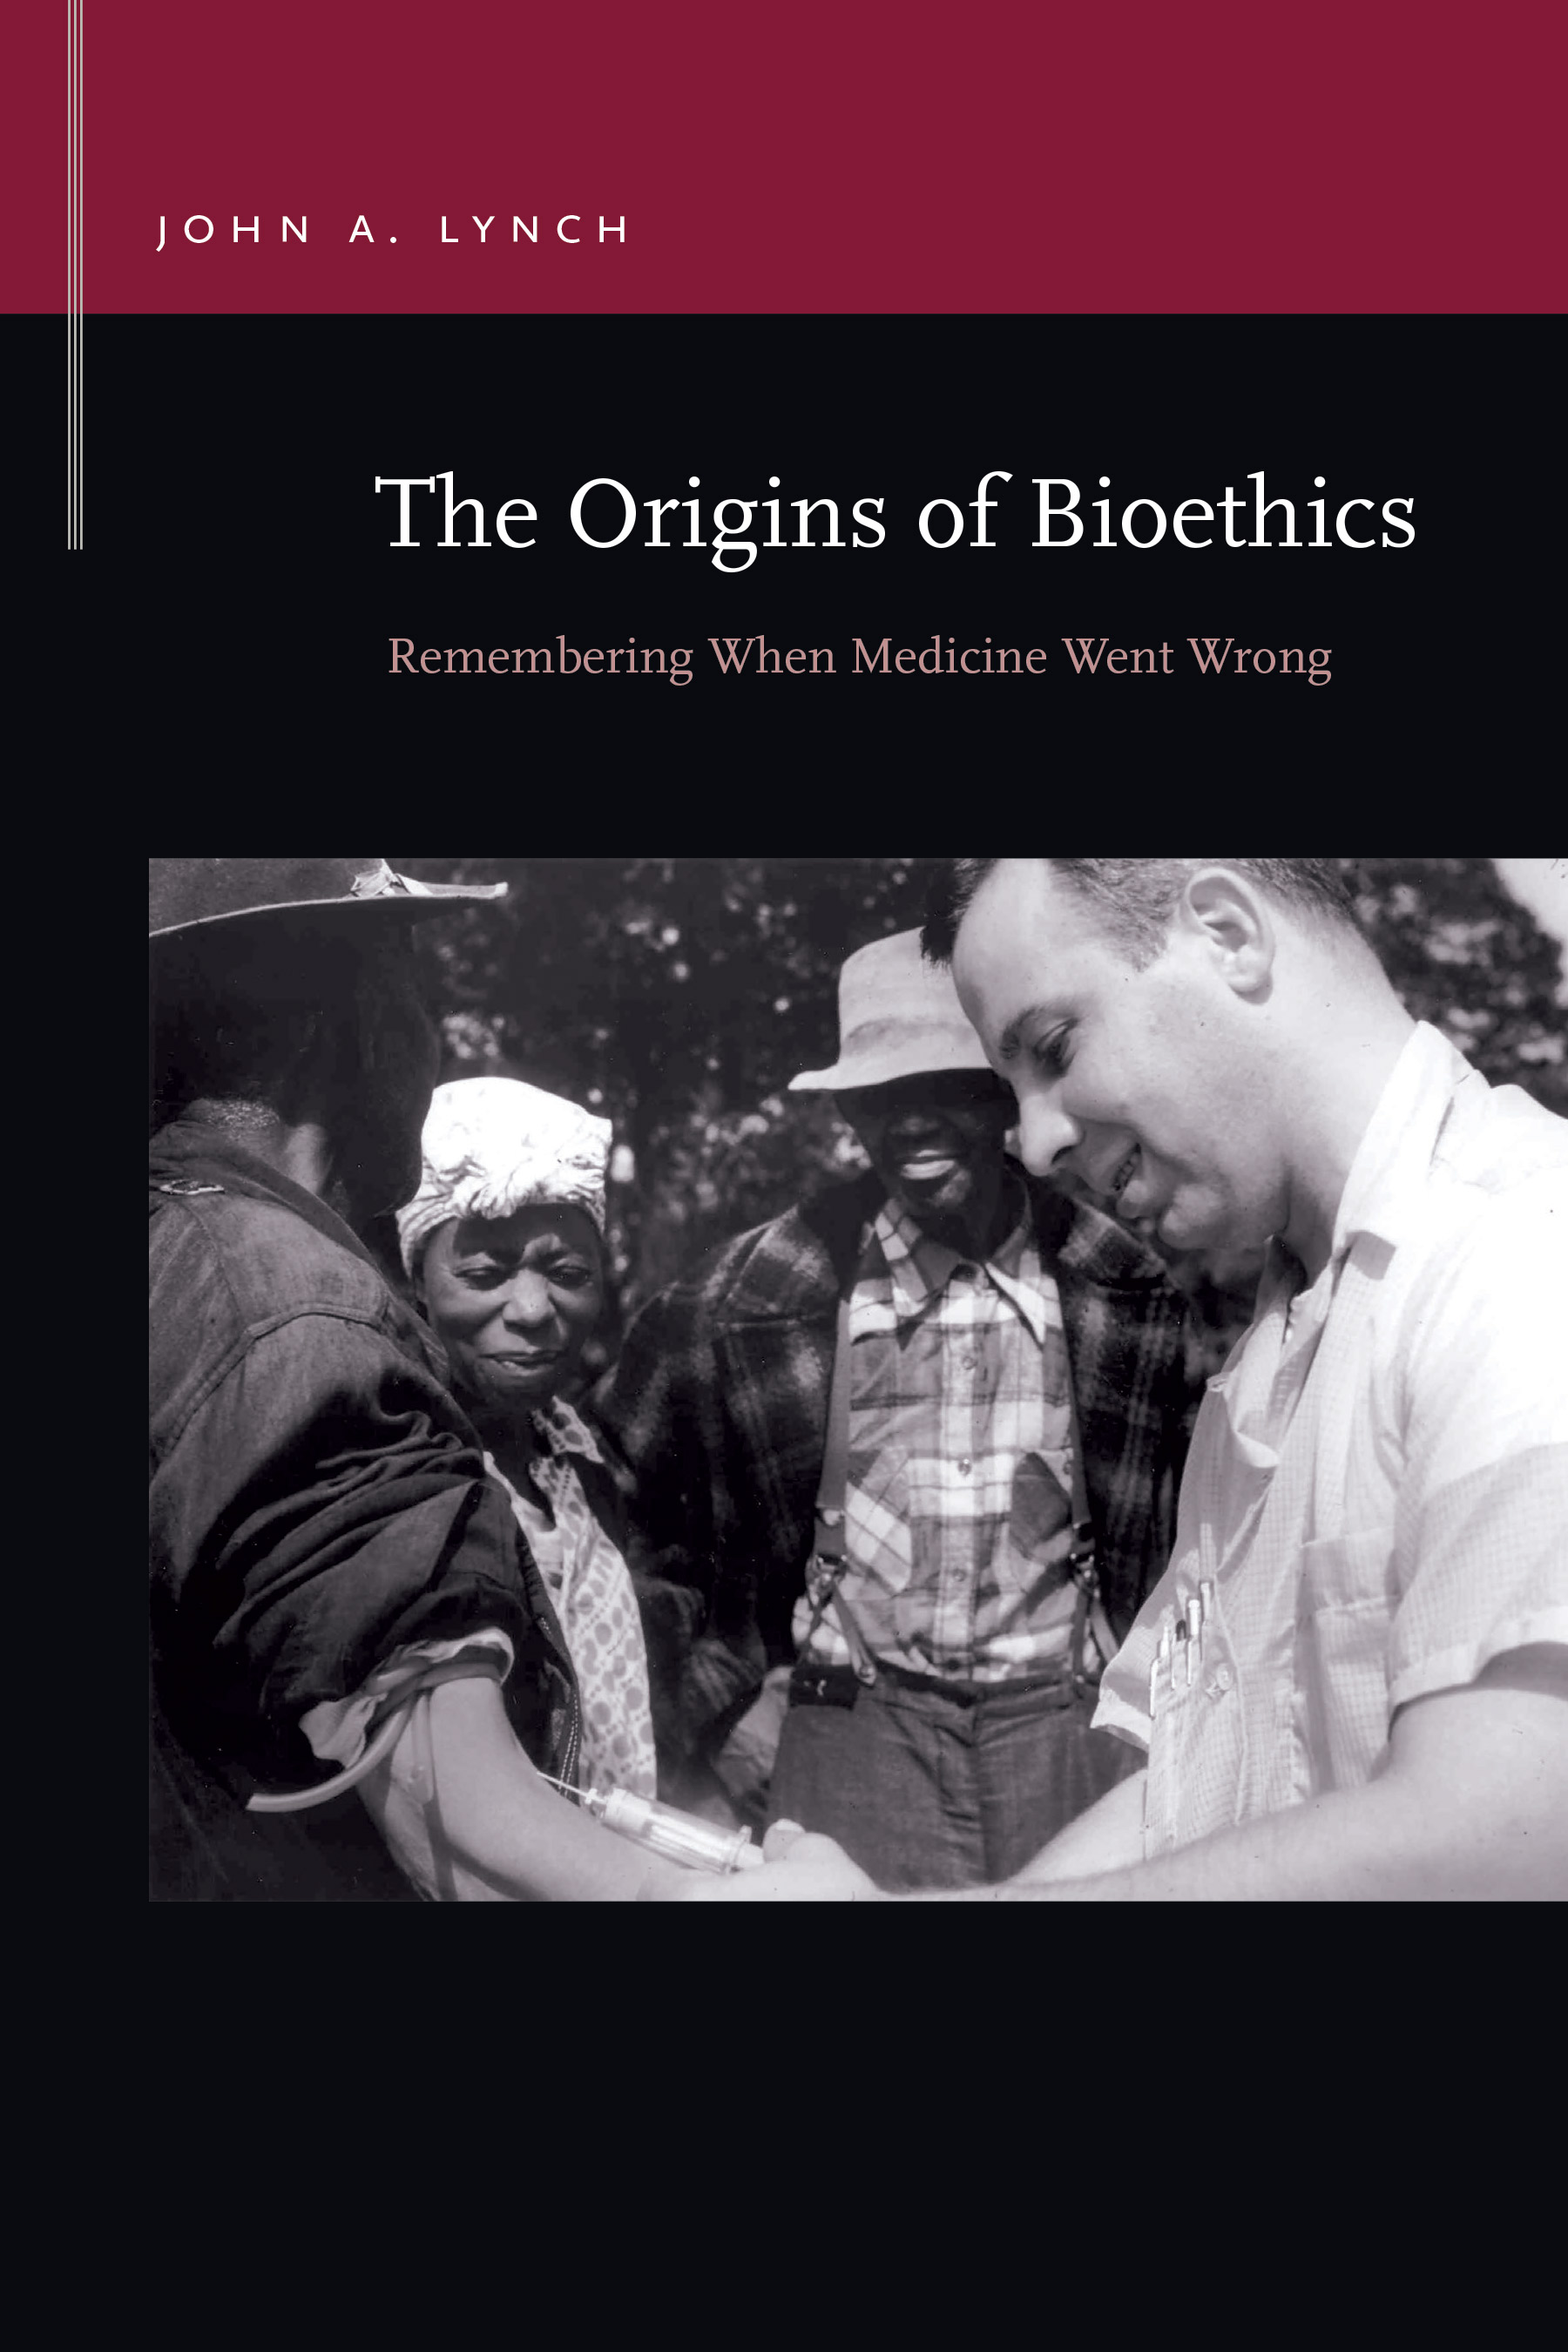 The Origins of Bioethics cover